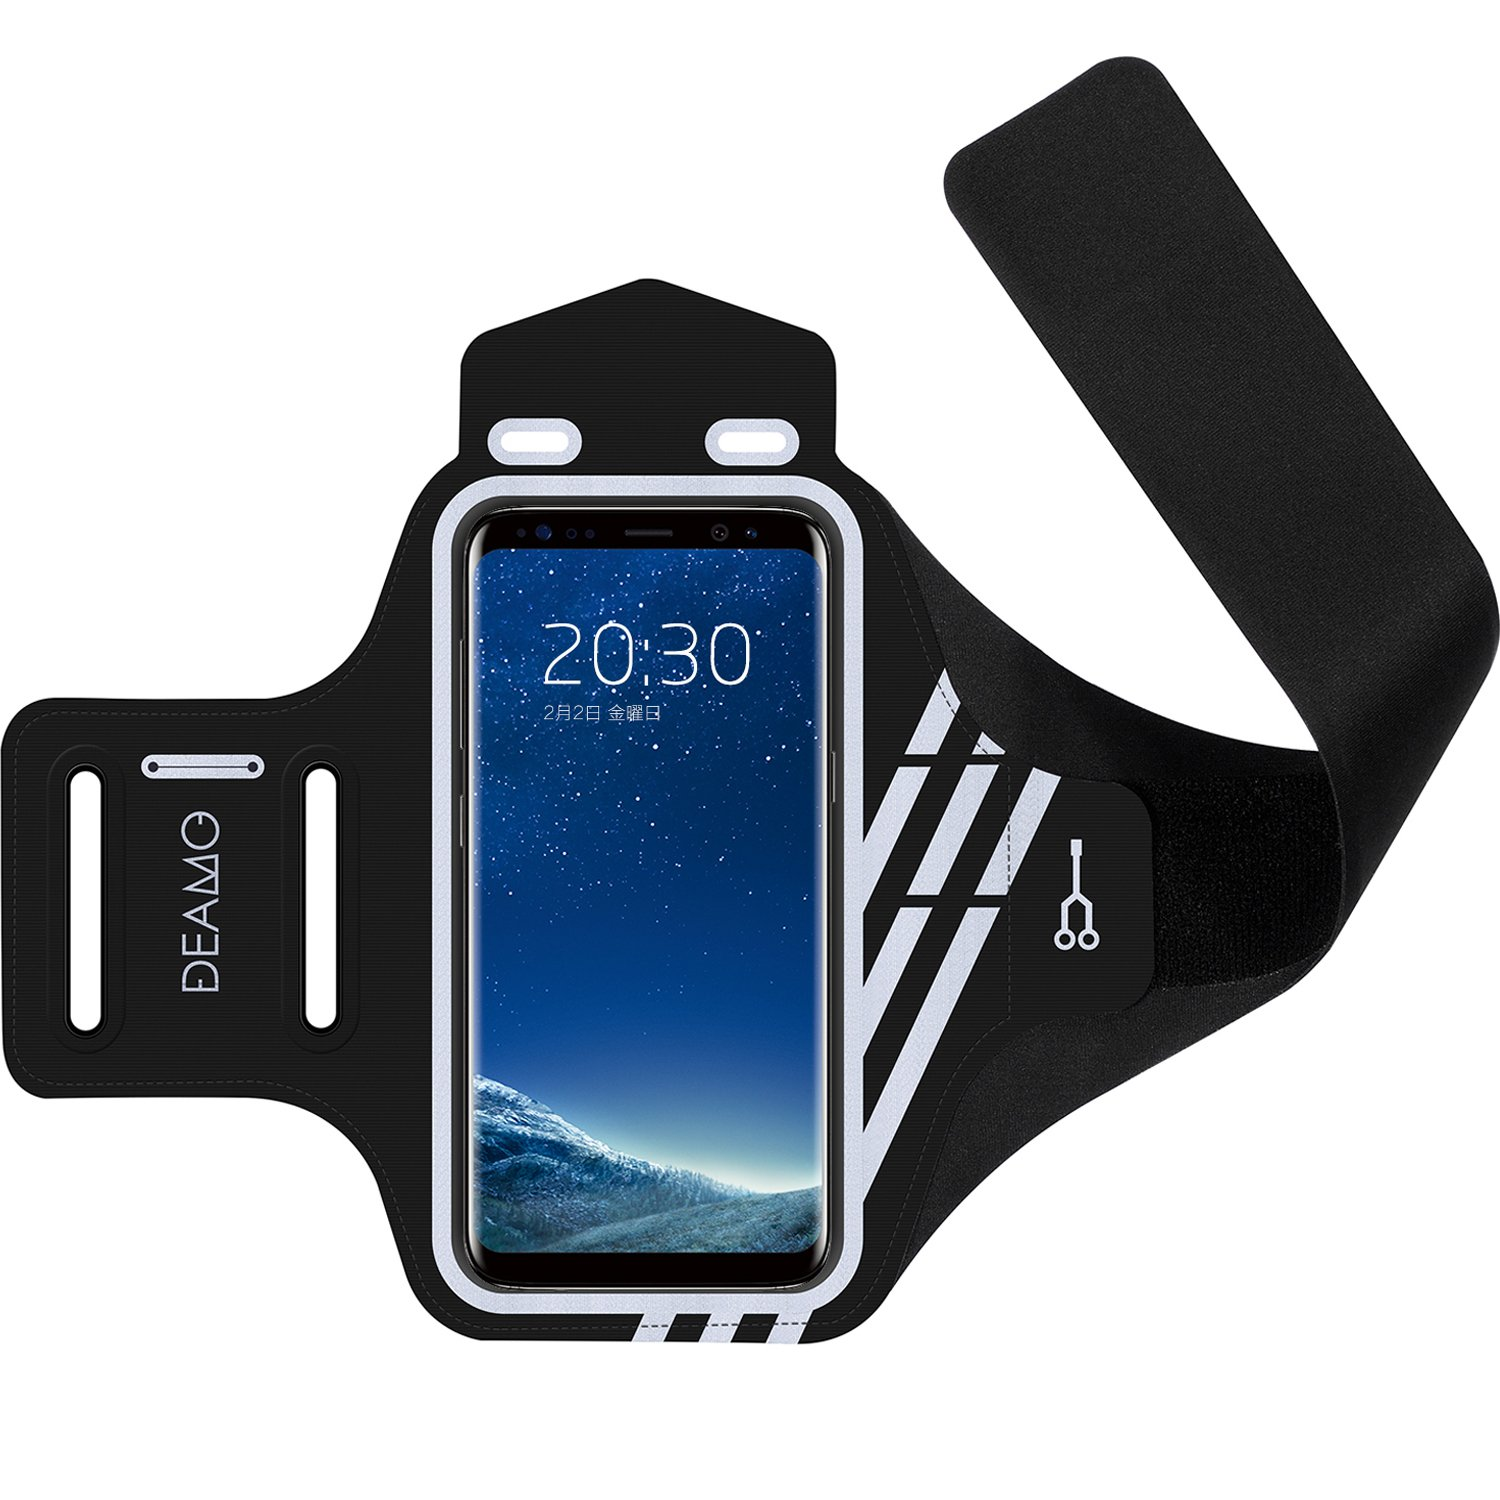 IPhone X, 8, 8+, 7, 7+, 6S, 6S+, 6, 6+ Samsung S8 S9 SPORTS Armband - Fingerprint Touch, Great for Running, Cycling or any Fitness Activity, Unique Hidden Pocket for Stores Cash, Cards and Keys.